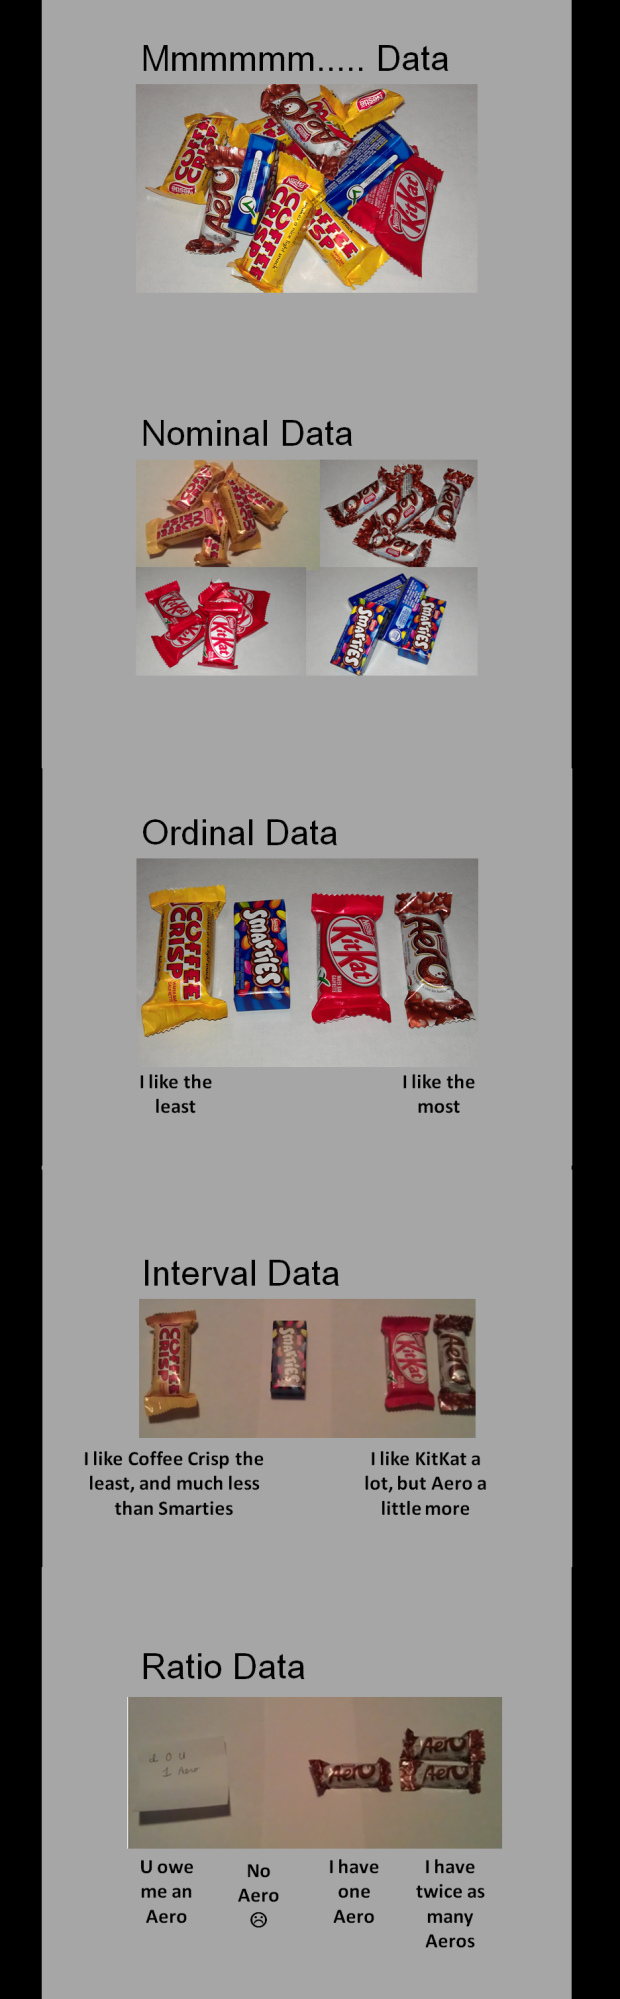 Nominal Ordinal Interval Ratio Data